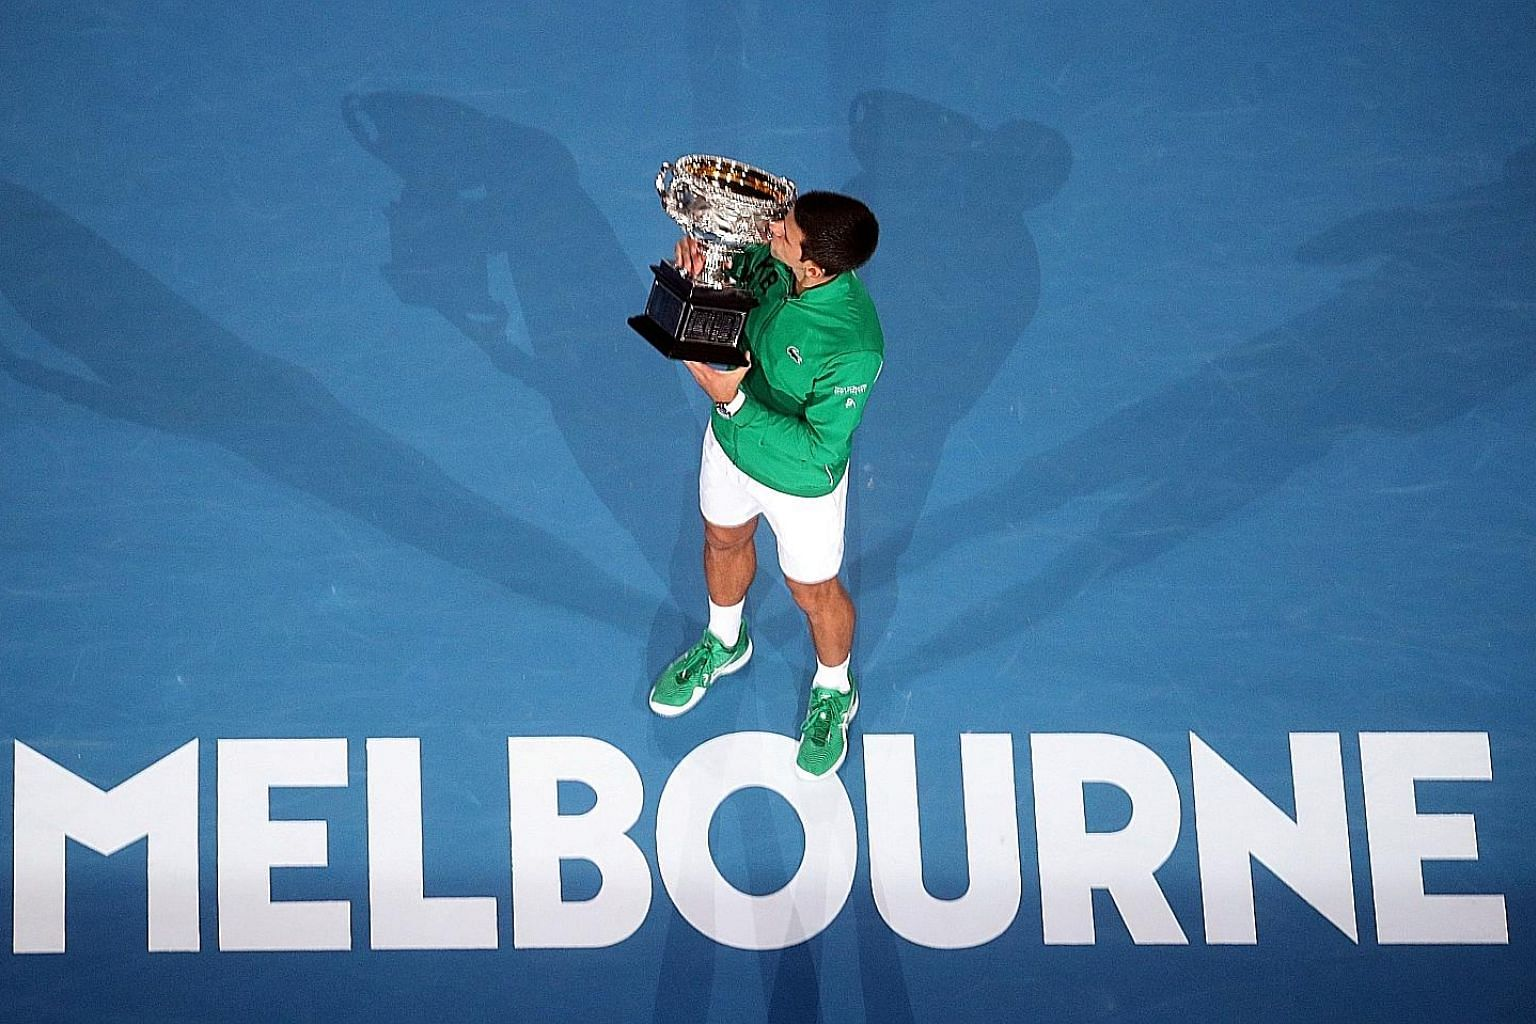 Serbia's Novak Djokovic kissing the trophy after winning the Australian Open final against Dominic Thiem of Austria in February for a 17th Grand Slam title.